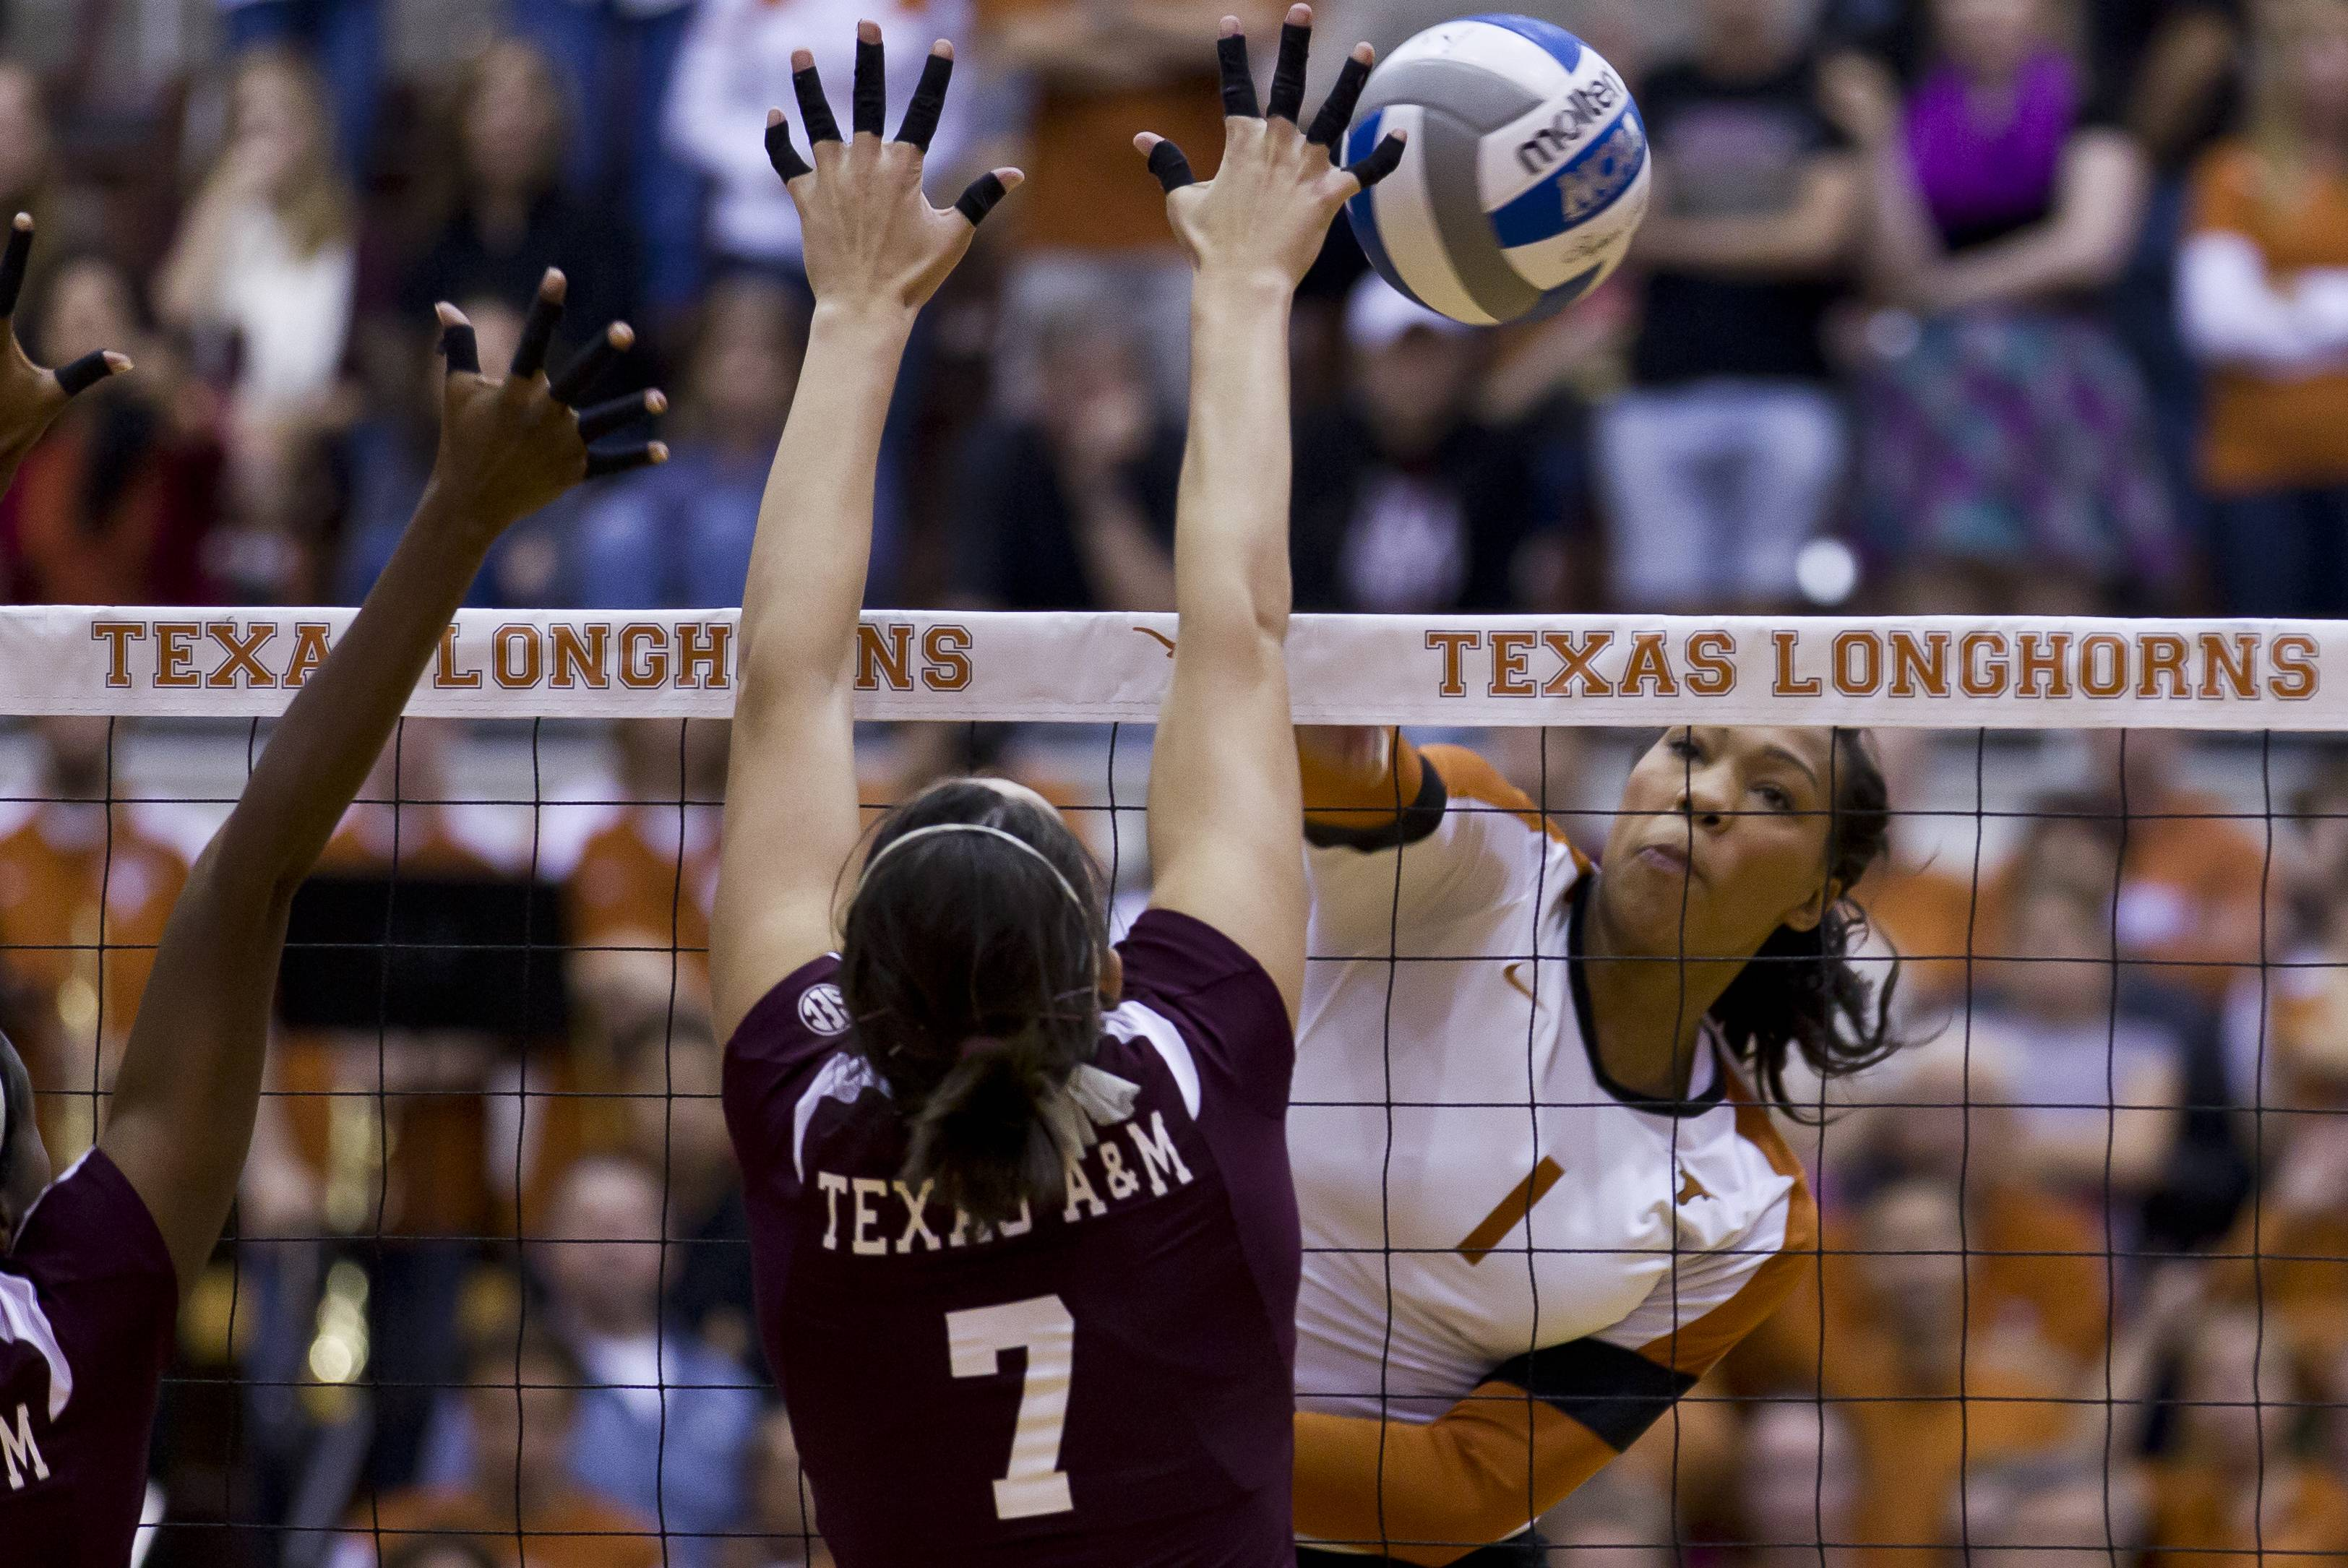 A look at Texas and Texas A&M's postseason meetings over the past eight years